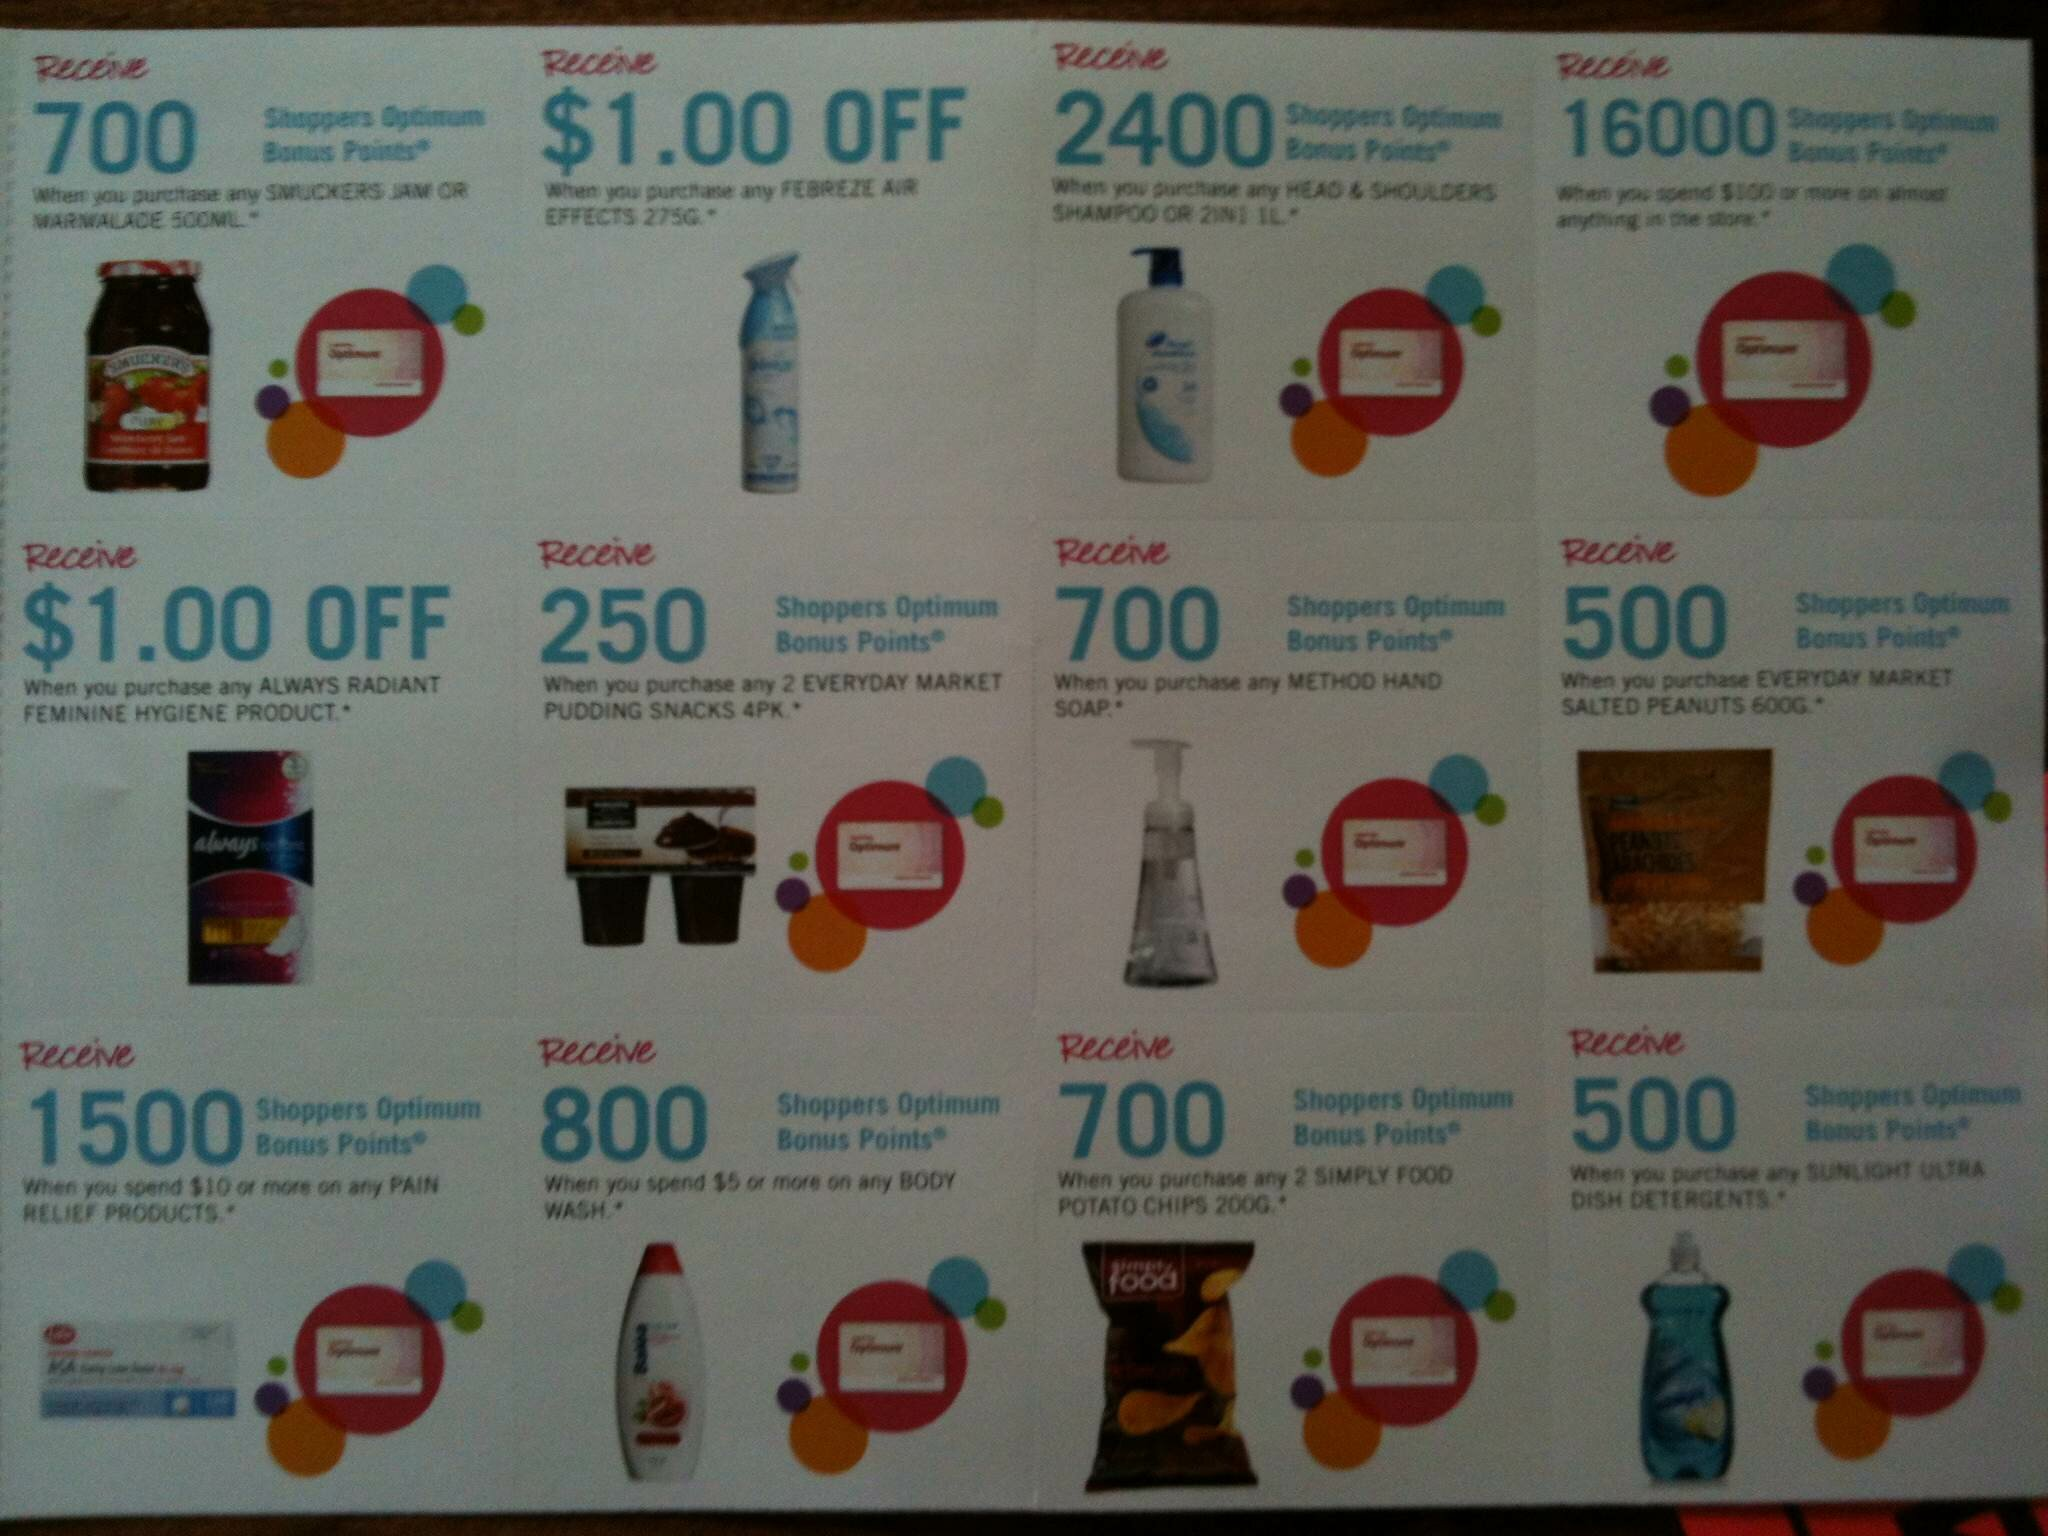 Shoppers Drug Mart Mailed Out Loyalty Program Coupons